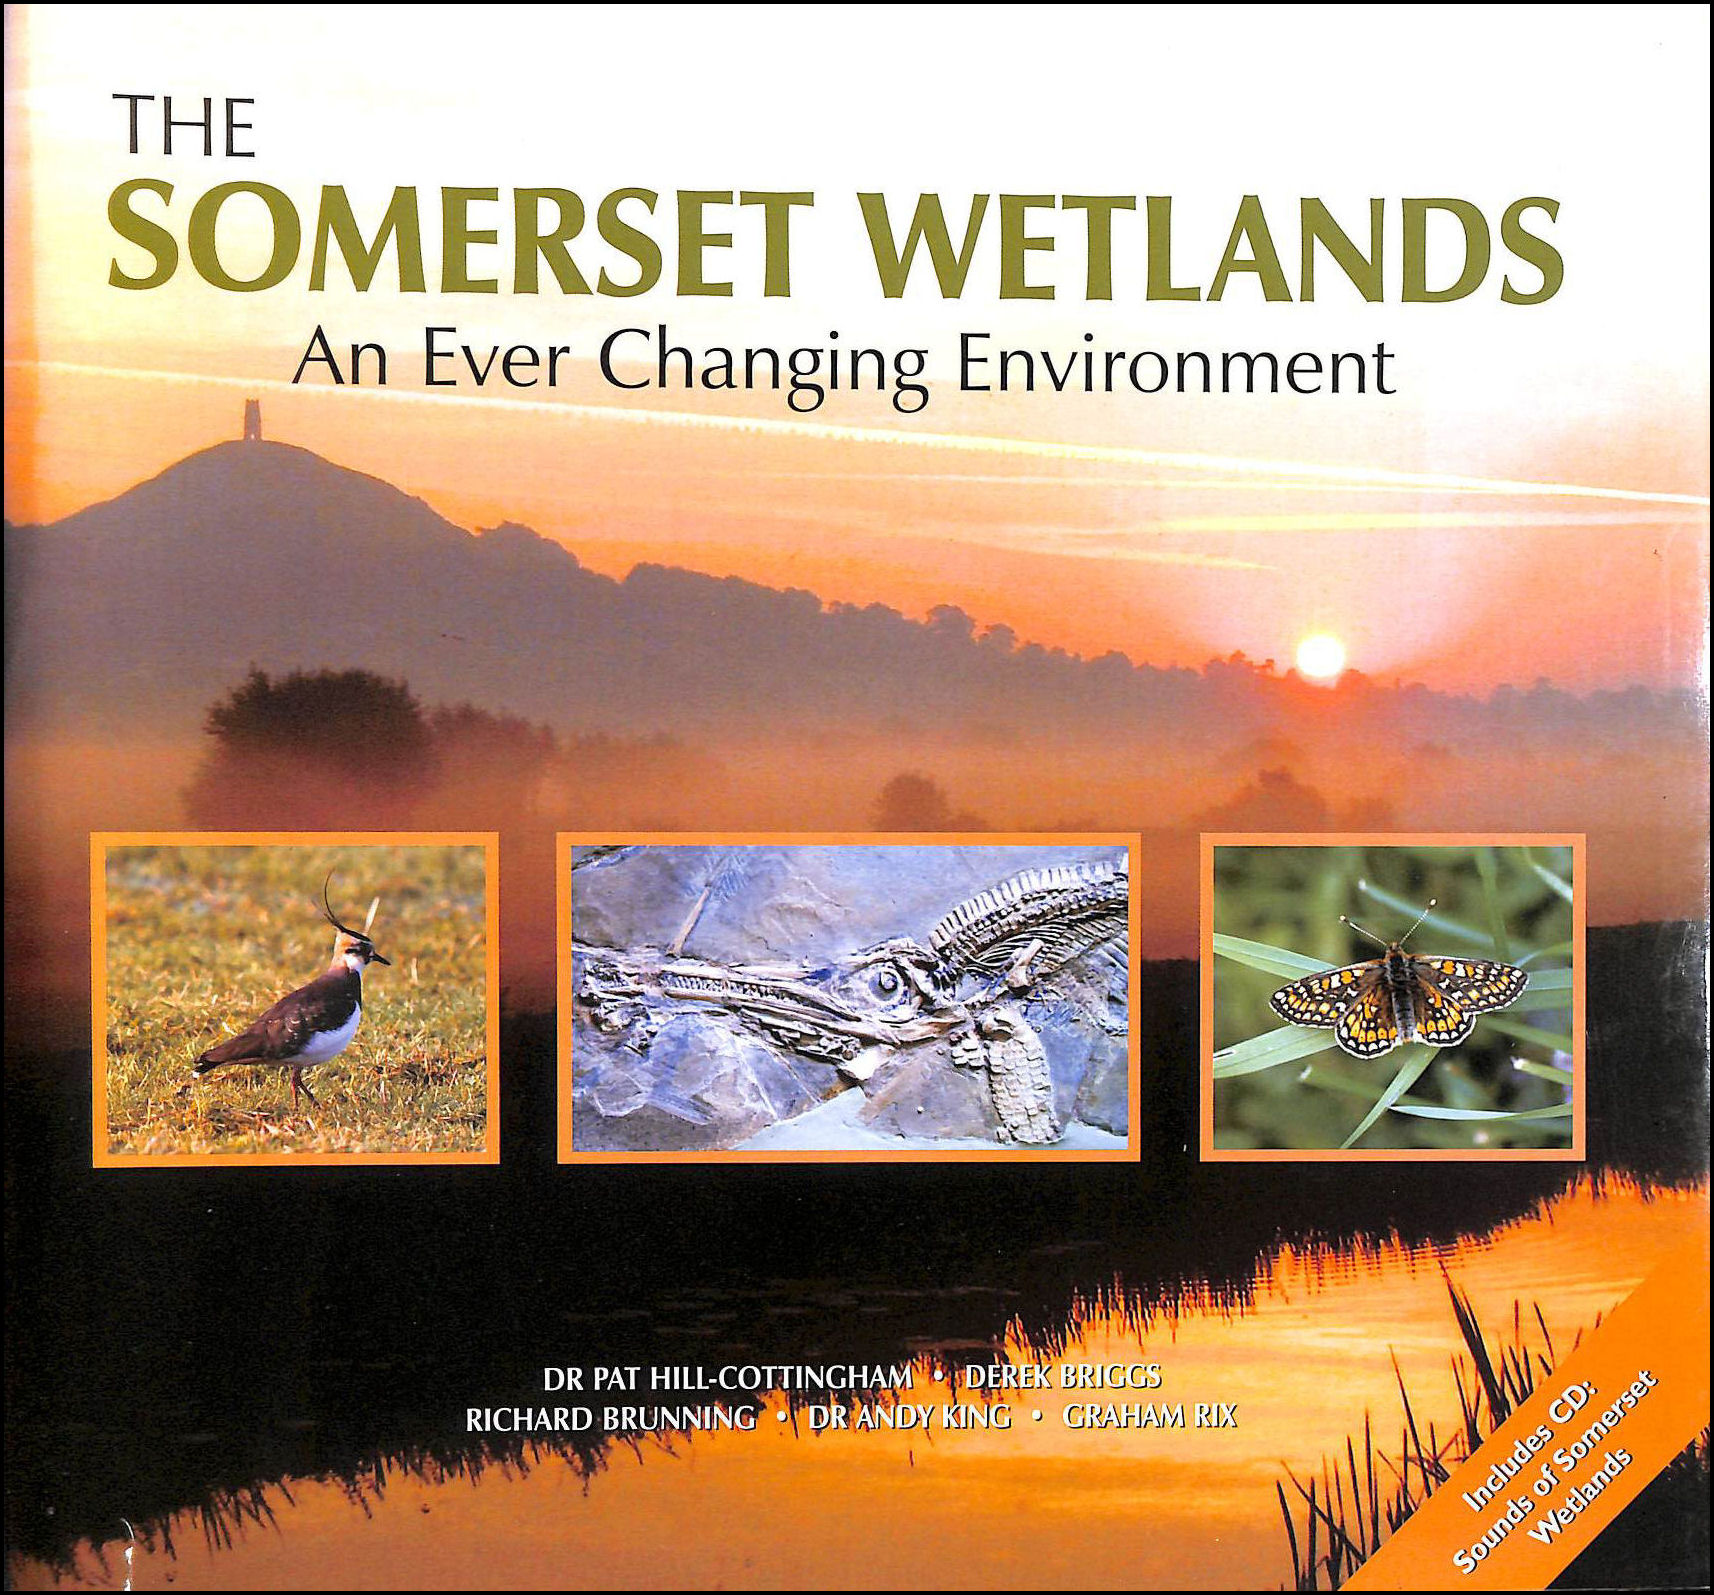 The Somerset Wetlands: An Ever Changing Environment, Hill-Cottingham, Pat [Editor]; Briggs, Derek [Editor]; Brunning, Richard [Editor]; King, Andy [Editor]; Rix, Graham [Editor];